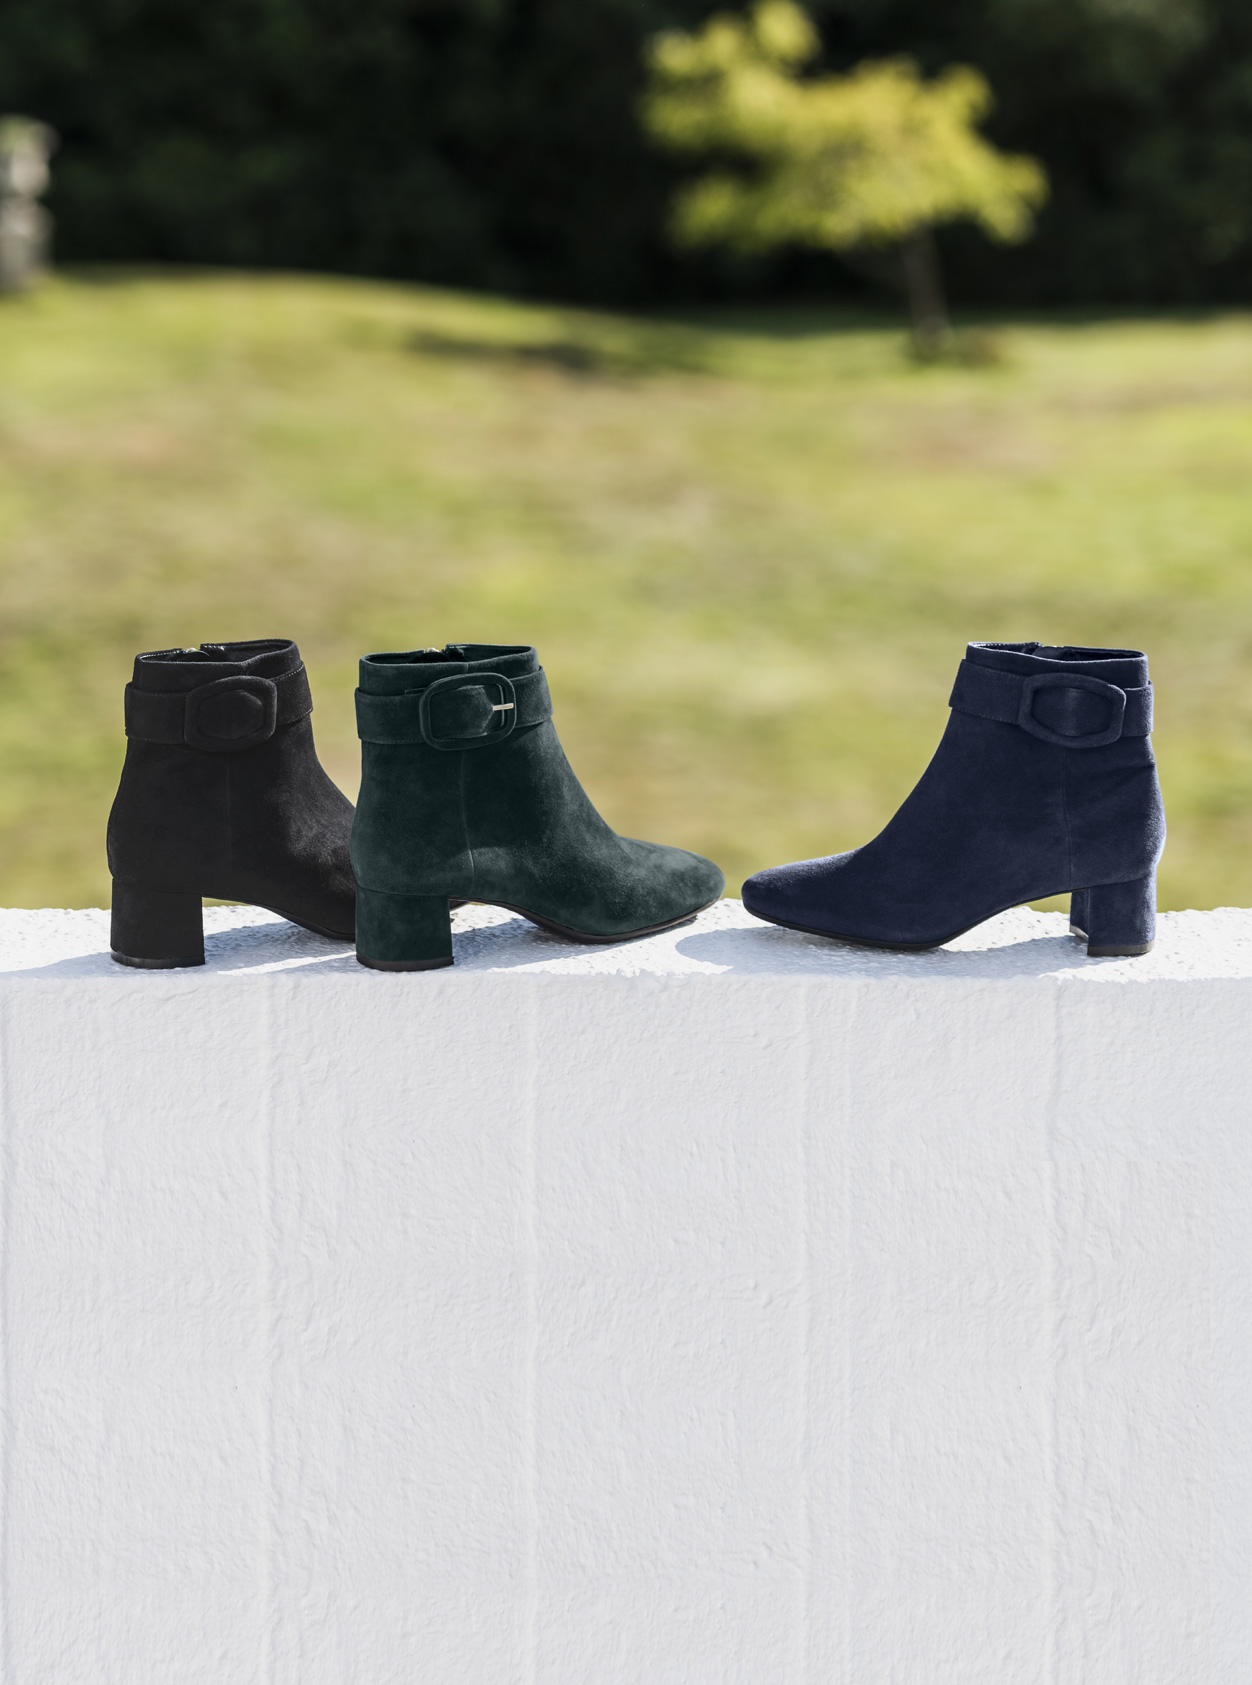 Women's ankle boots from Hobbs, from left to right: Black, green and blue.